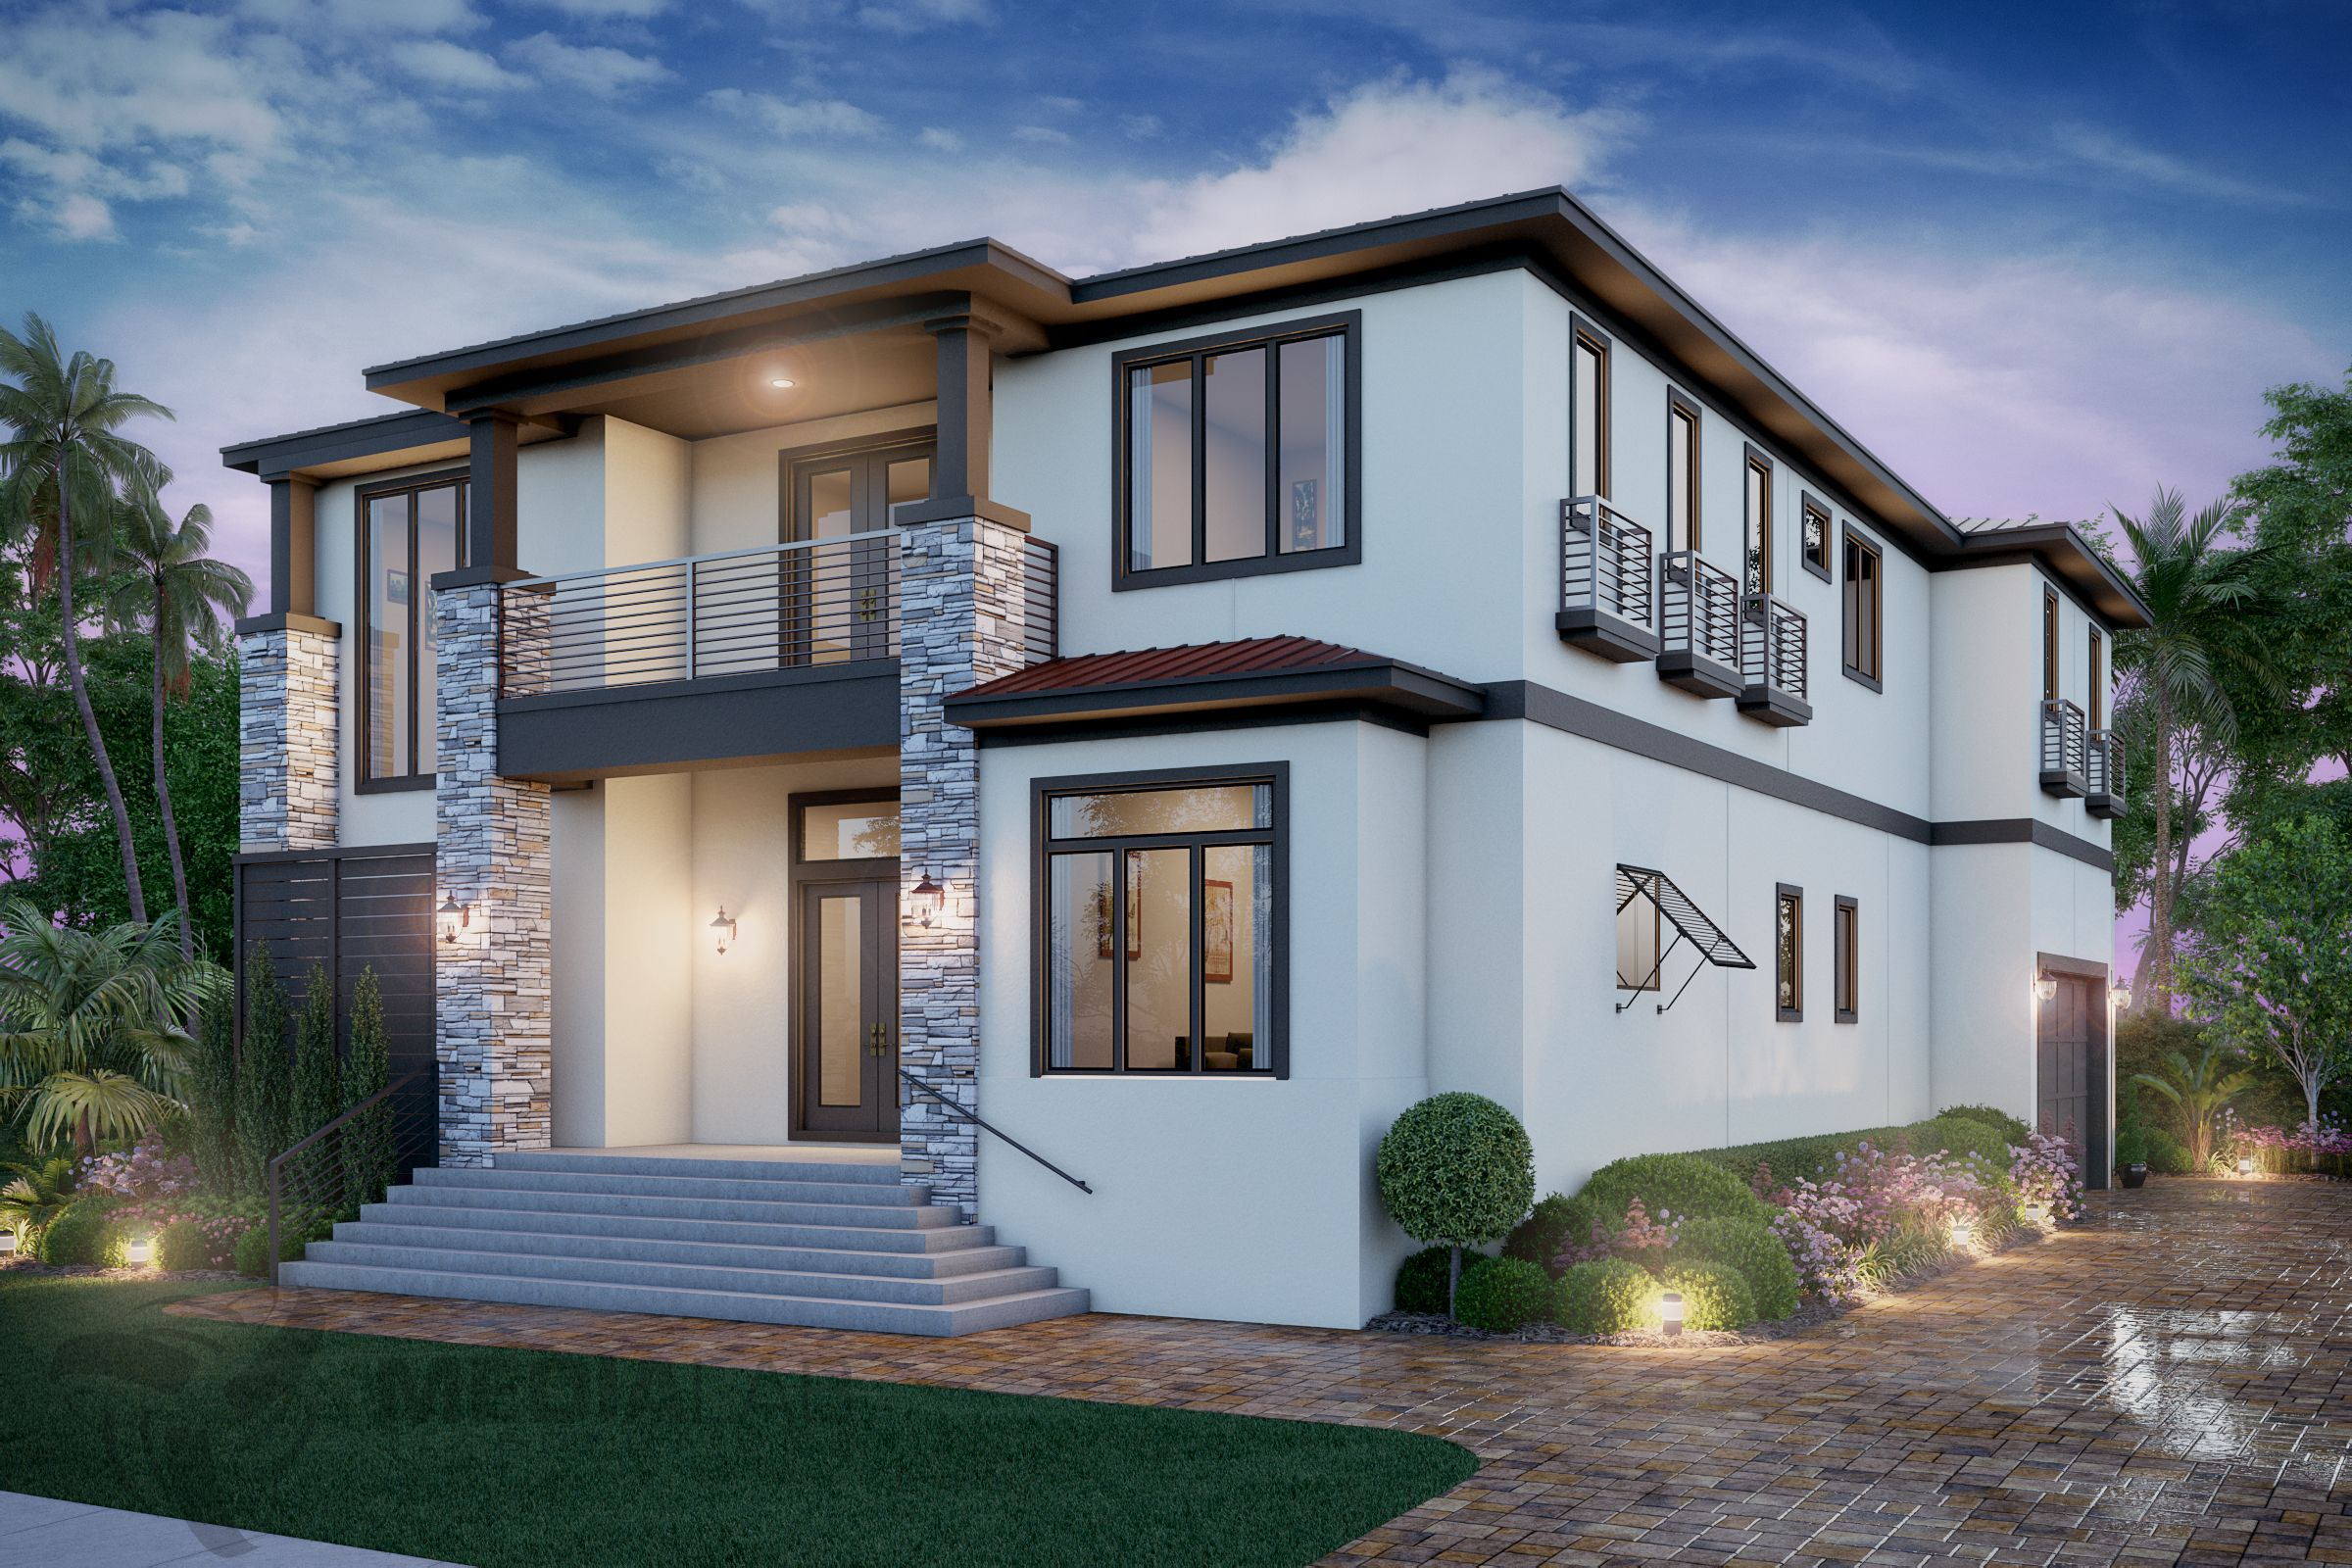 Photorealistic 3d Render Of A Luxury Home Exterior In